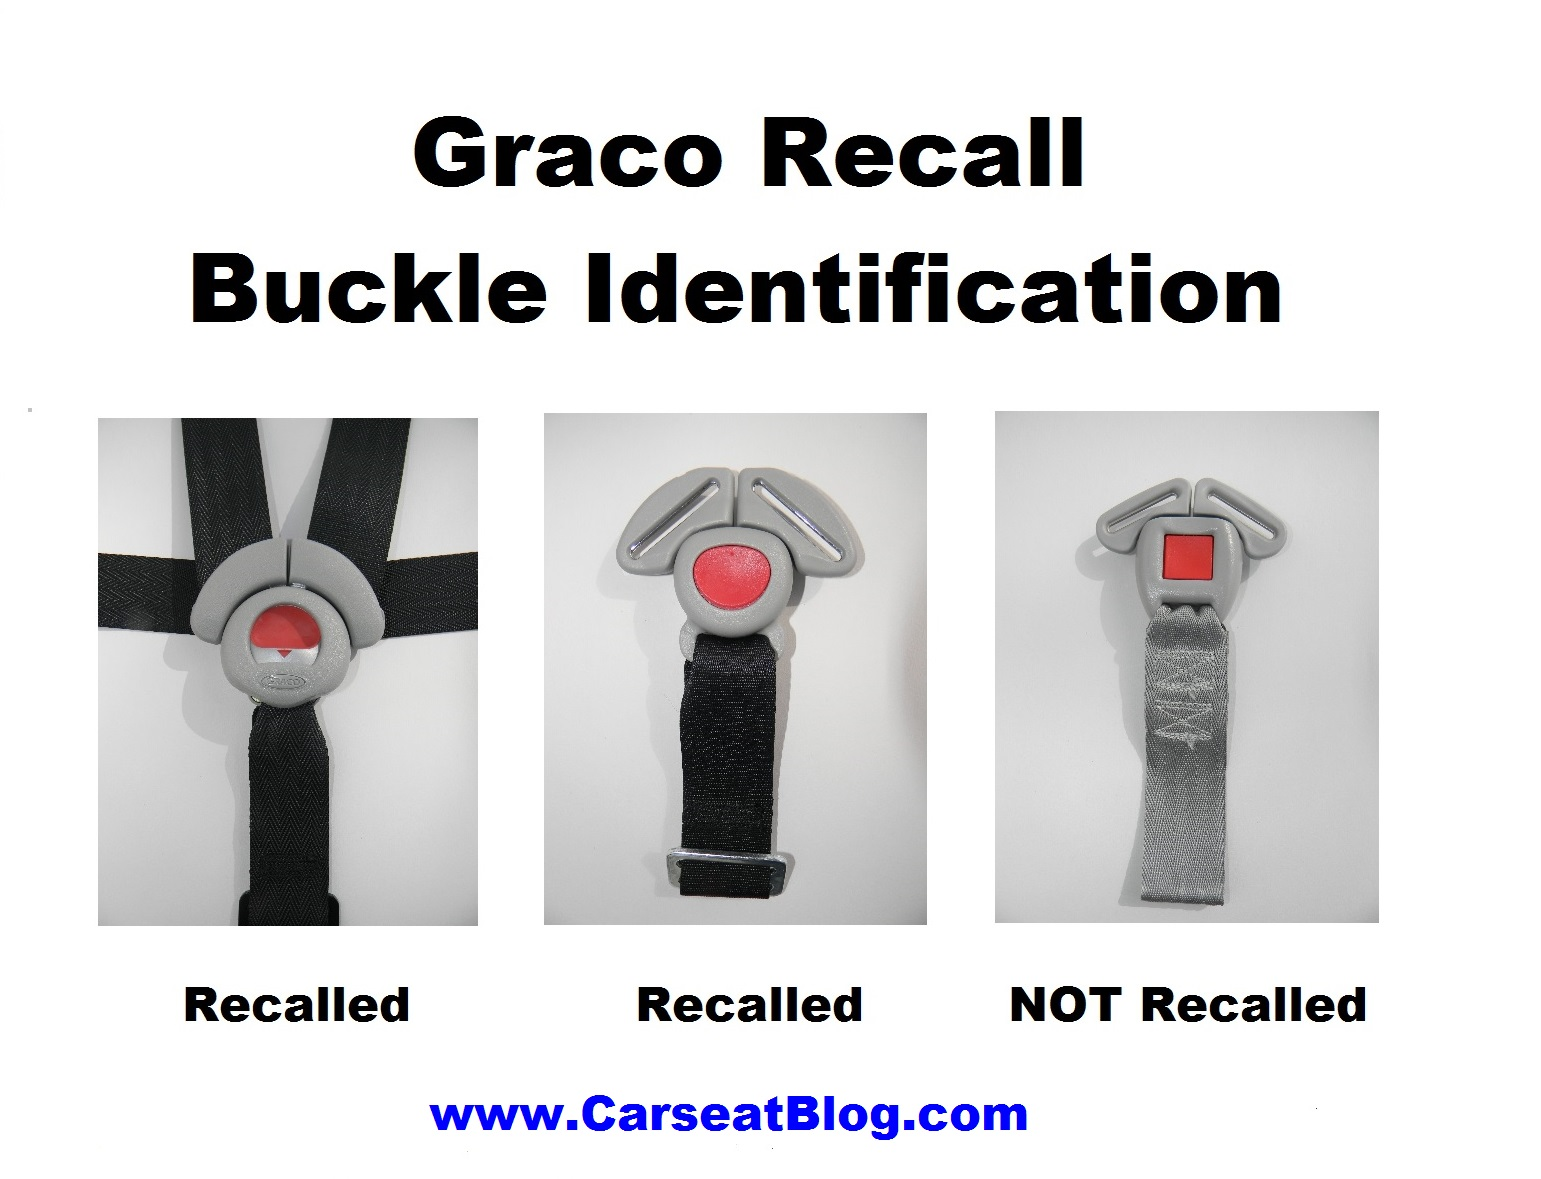 Graco car seat recall 2013 list